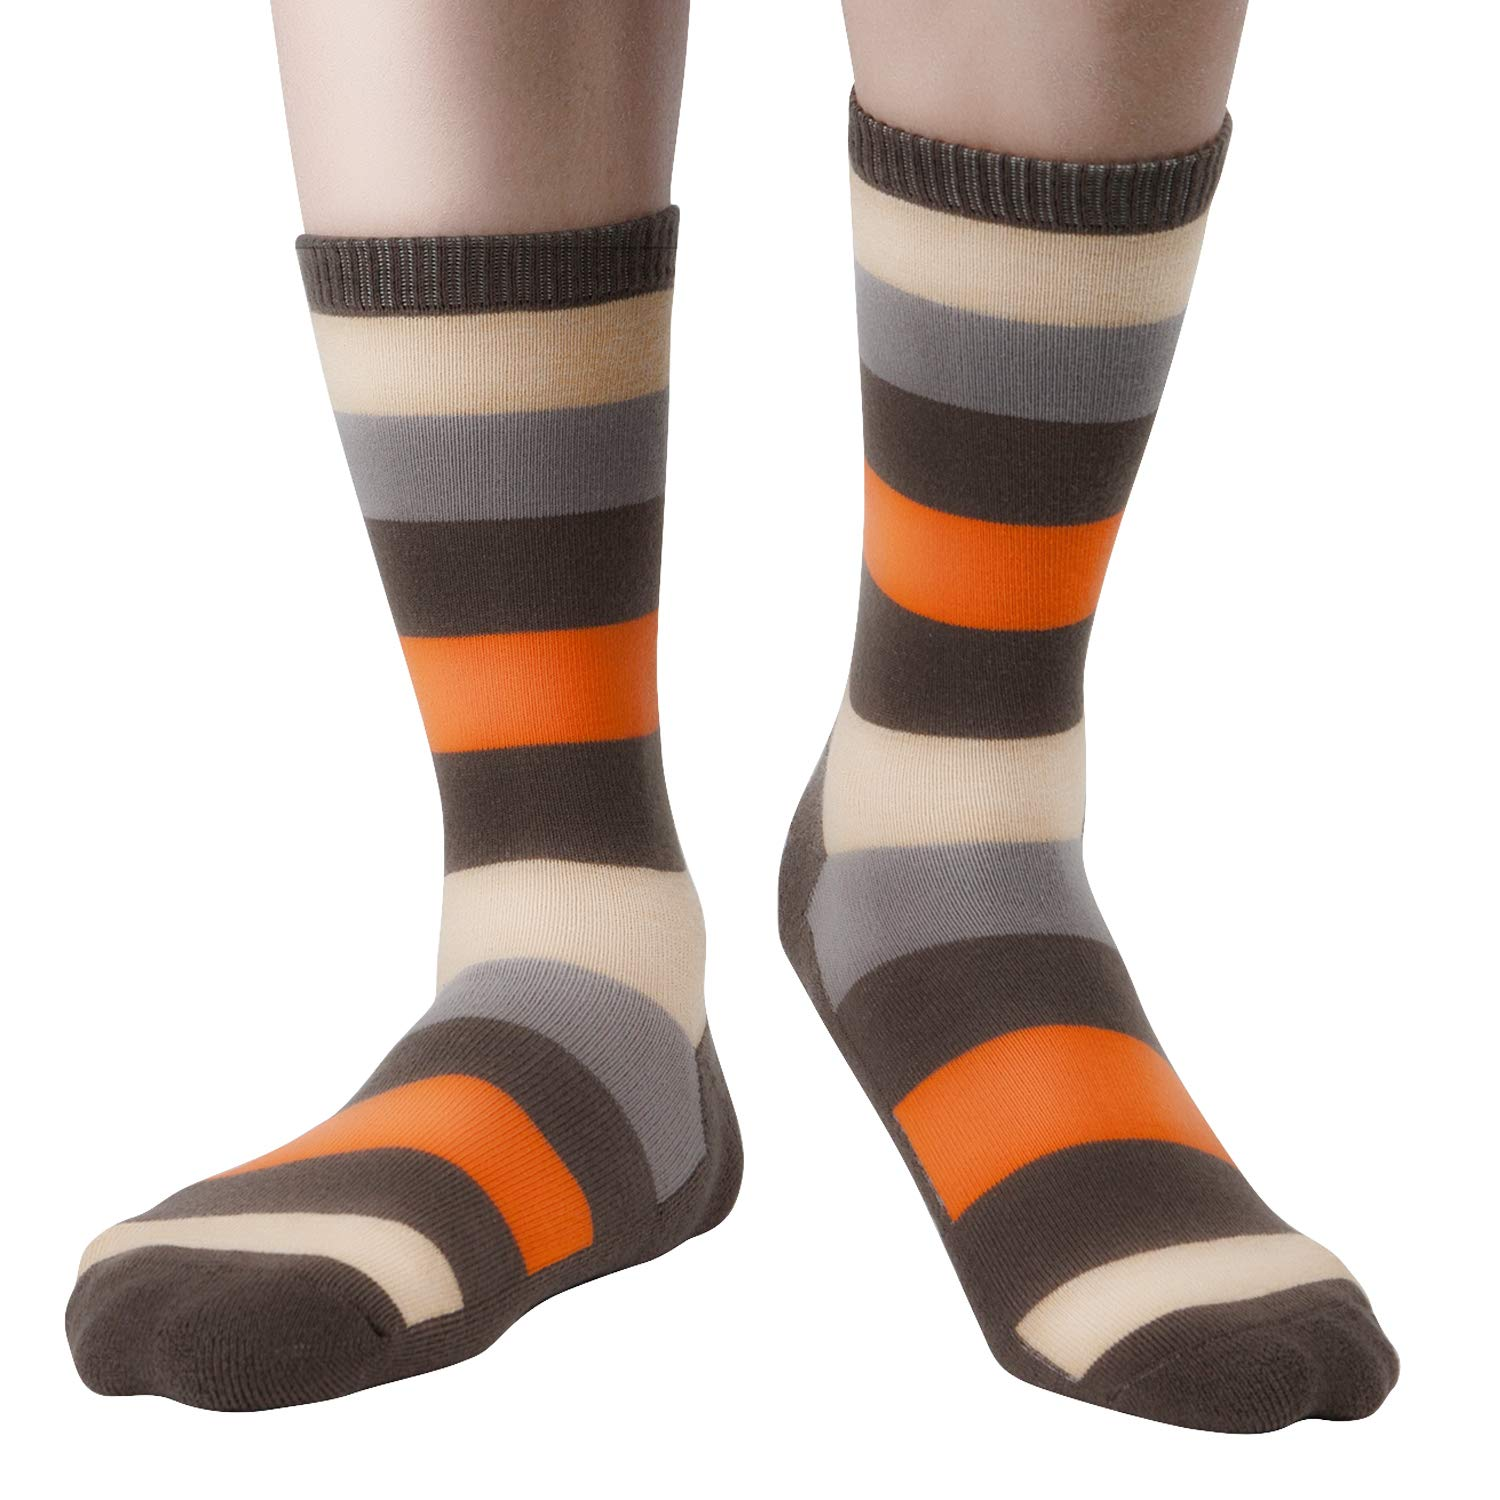 +MD 6 Pack Uomo Fun Novelty Dress Socks Umidit/à Wicking Bamboo Crew Calzini a righe colorate con motivo argyle a righe